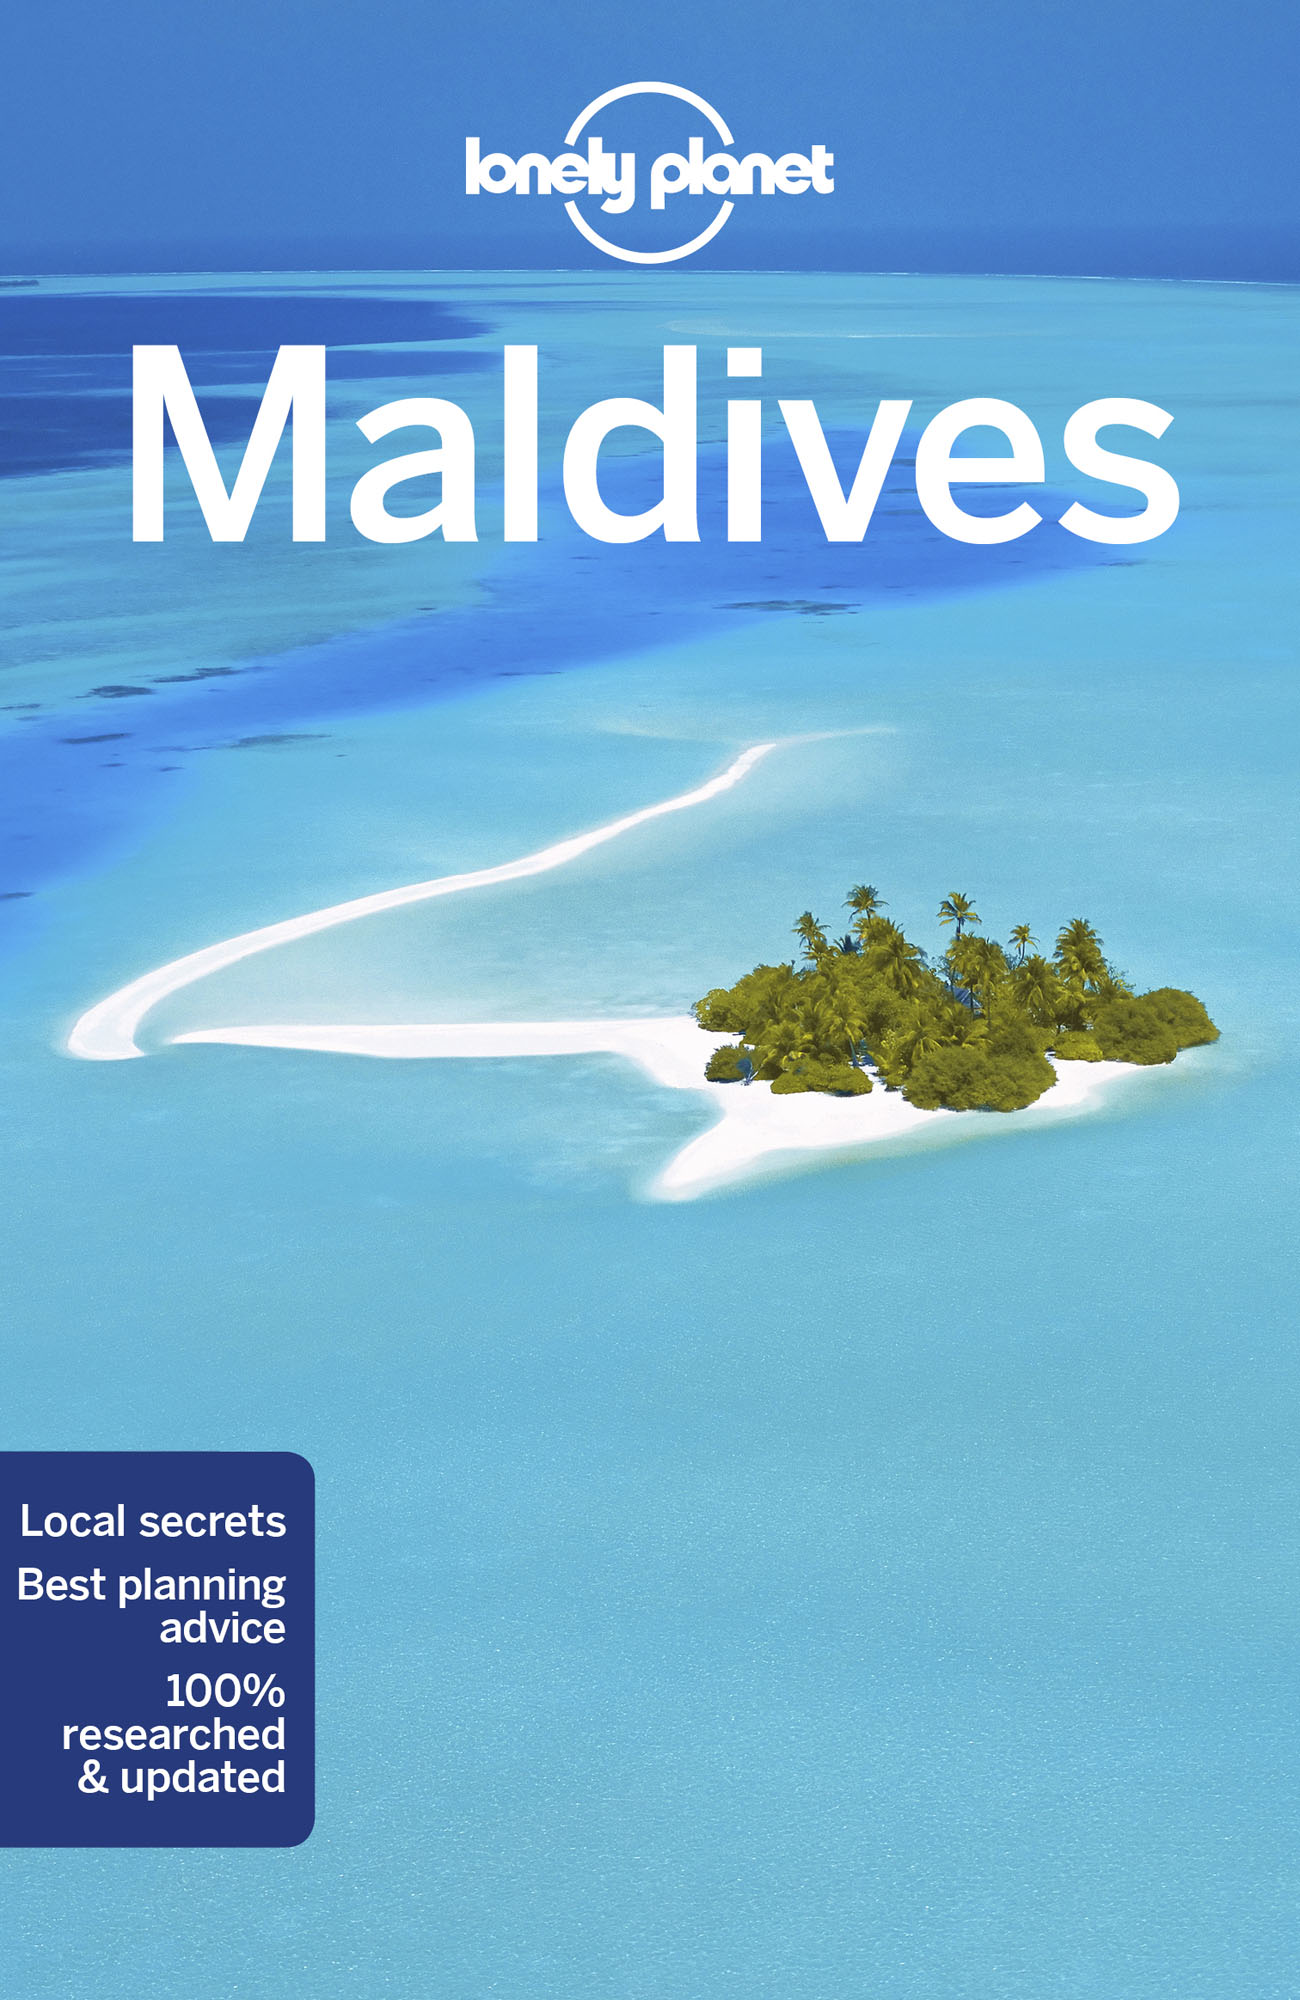 Maledivy (Maldives) průvodce 10th 2018 Lonely Planet